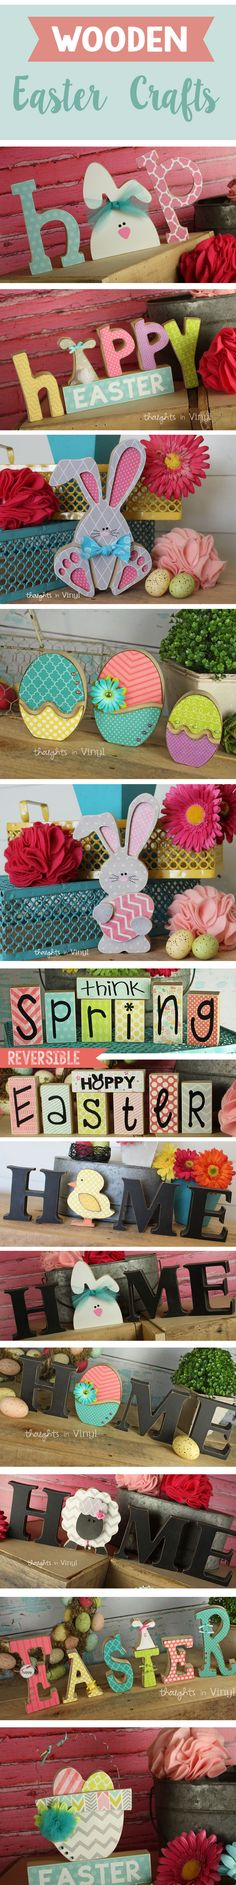 Wooden Easter Crafts.  So fun to make.  Bunny crafts, wooden letters, easter eggs, easter baskets...adorable!